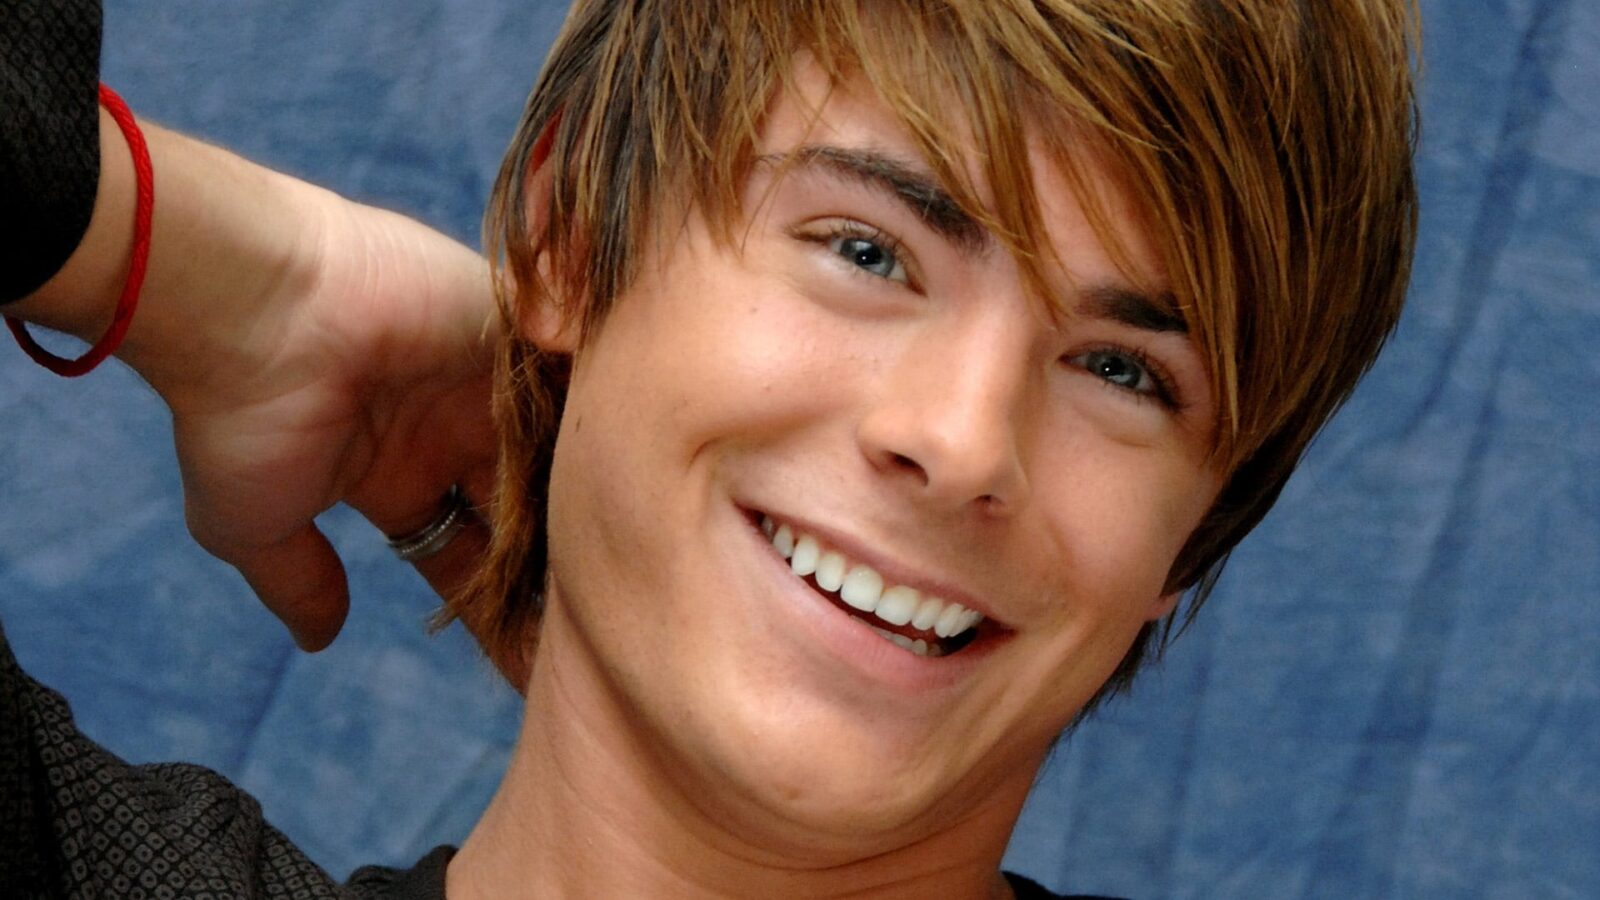 Zac Efron HD wallpapers free Download Zac Efron